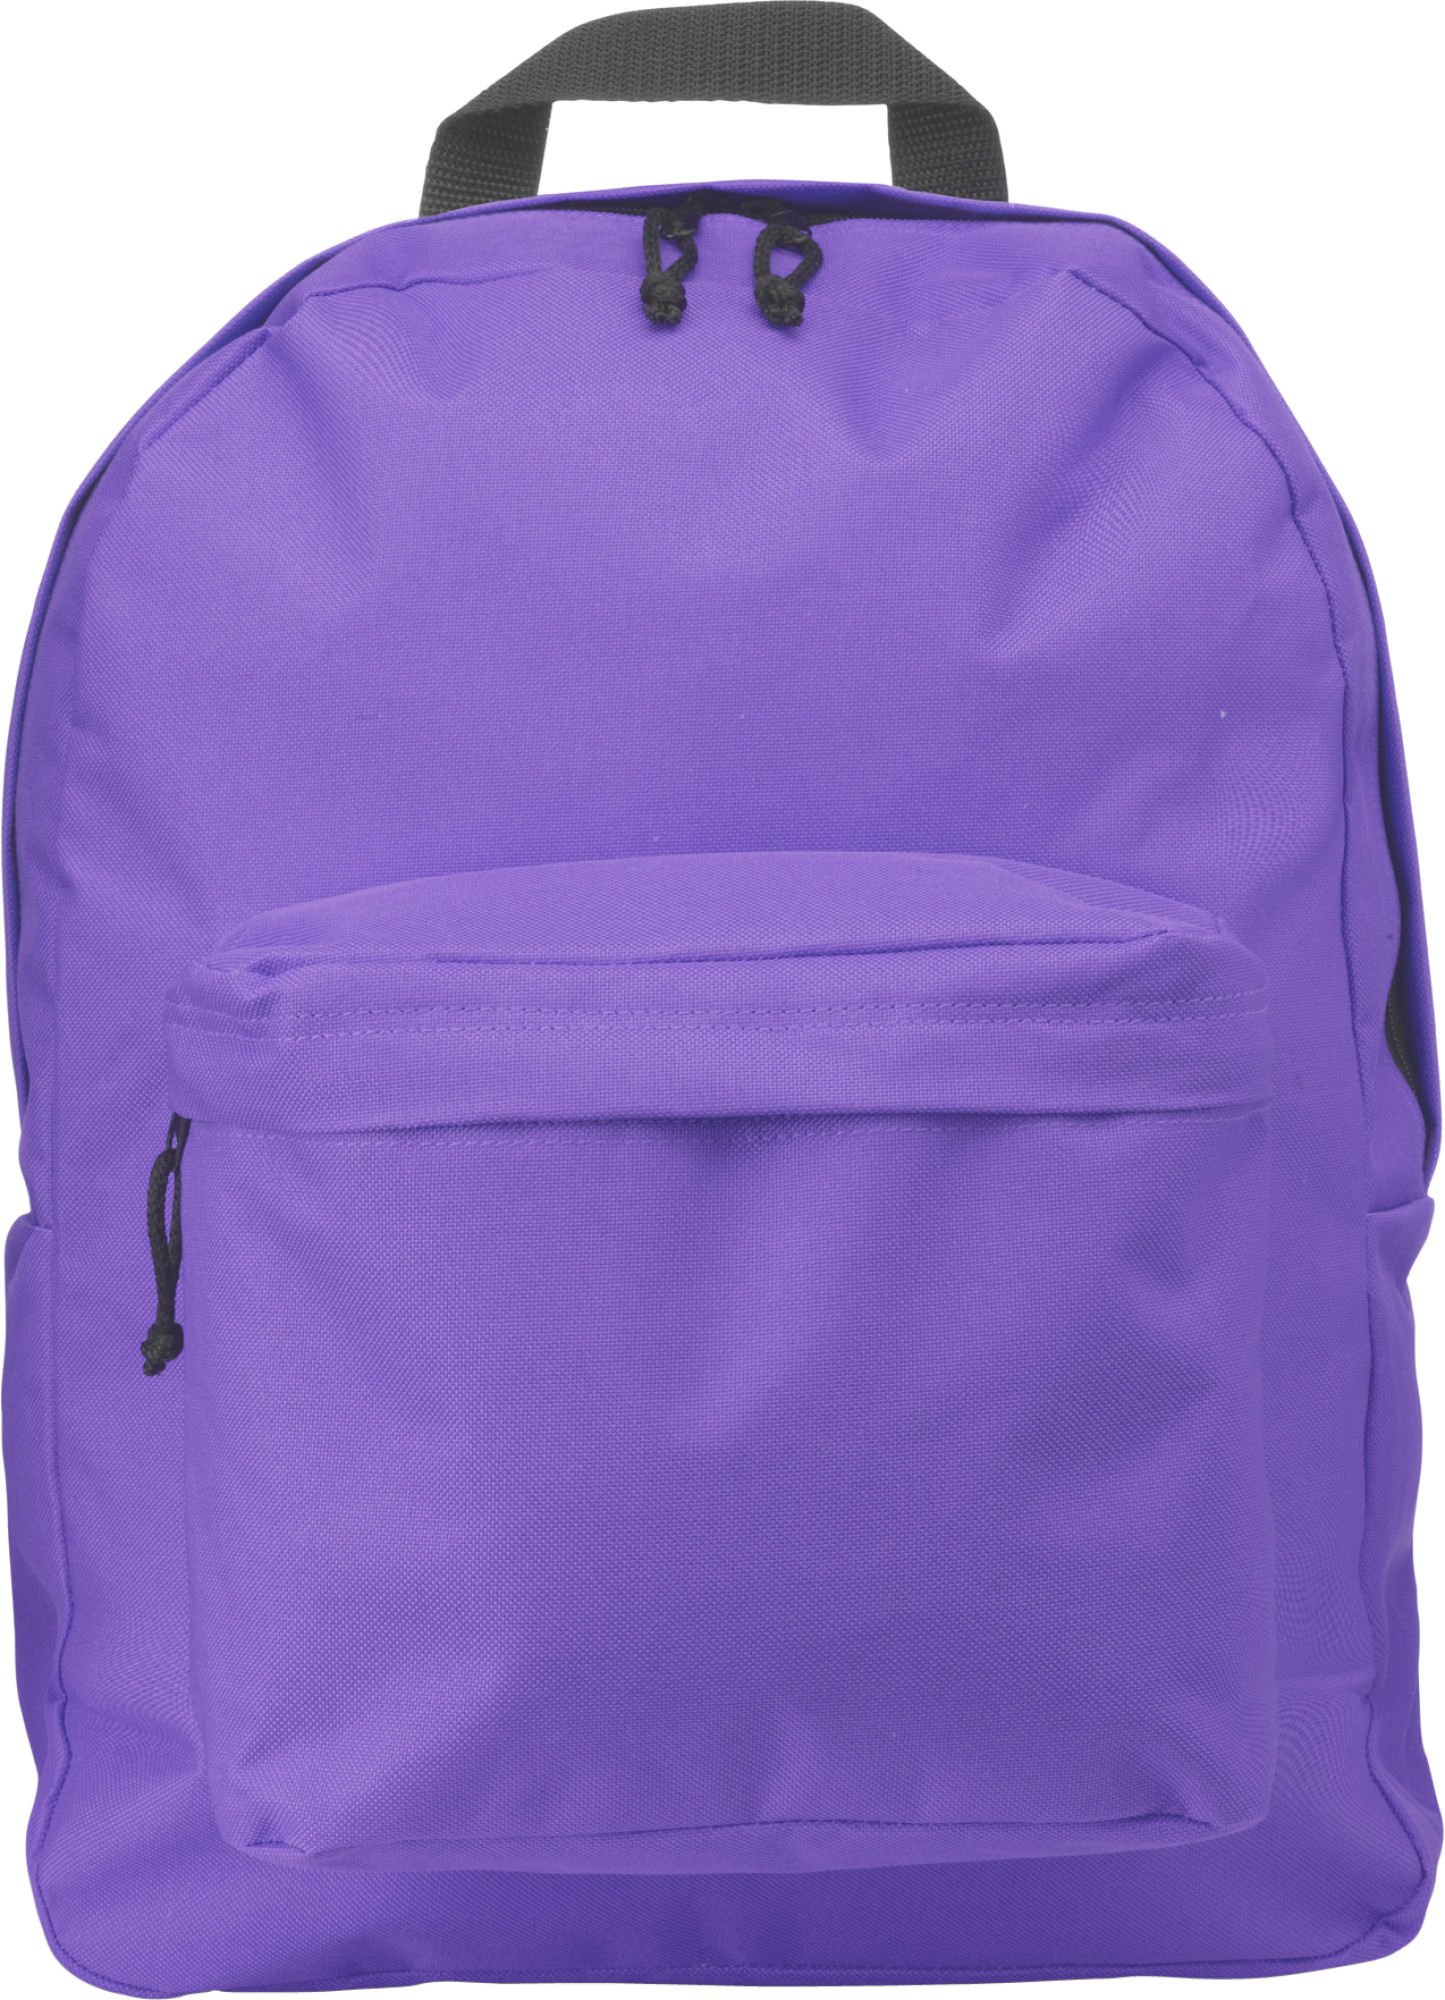 Branded Polyester backpack